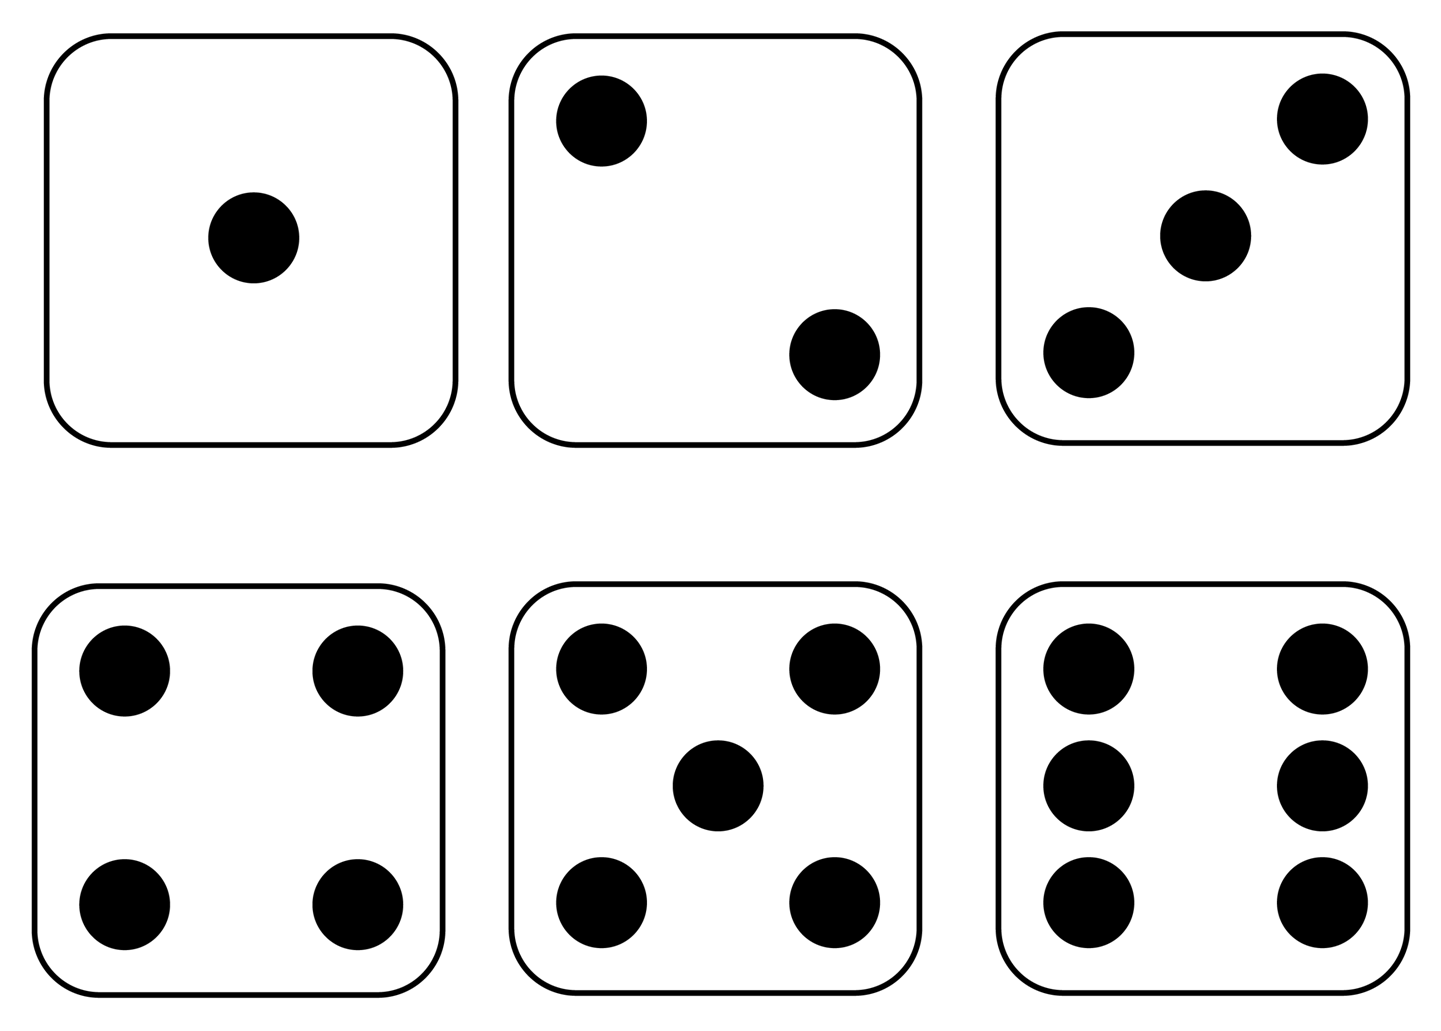 Dice clipart outline. Free images download clip